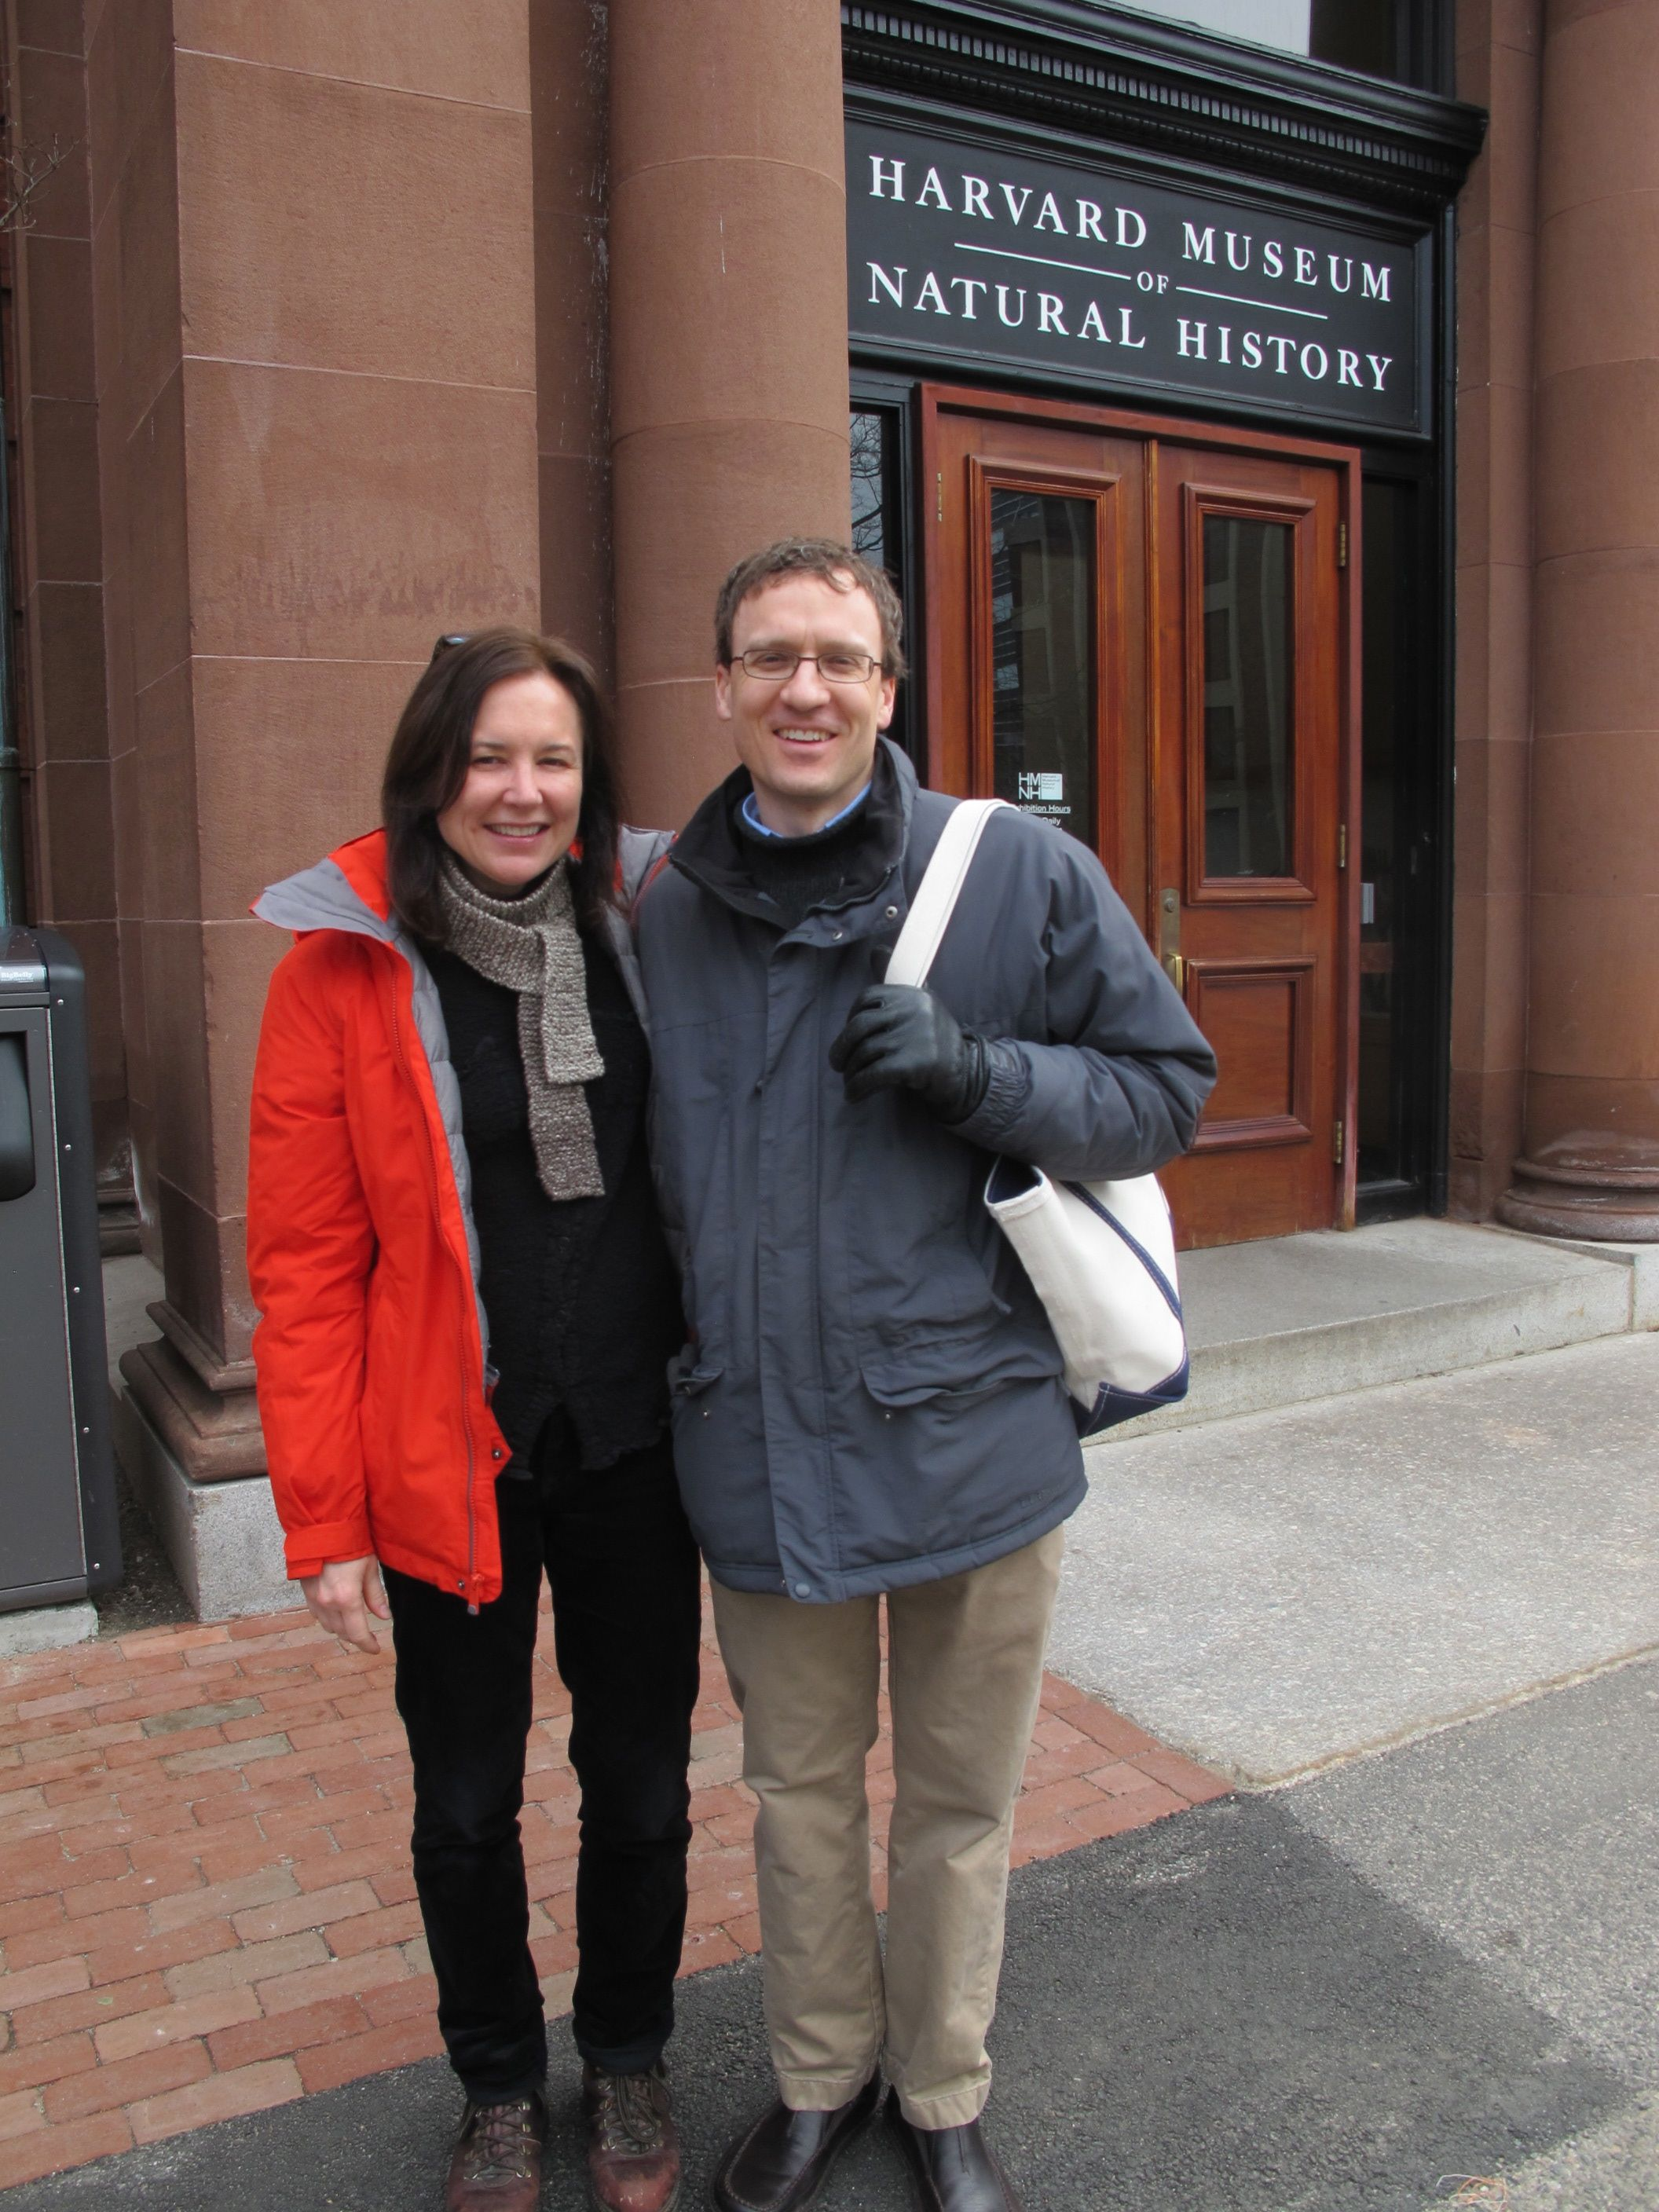 Harvard entomologist and author Michael Canfield gave us a historical tour of the Museum of Natural History and the Museum of Comparative Zoology,which is not open to the public. Mike's last book was Field Notes On Science and Nature, on which he collaborated with such great scientists as E.O. Wilson, Bernd Heinrich, George Schaller and Piotr Naskrecki.  Just wait until his next book comes out—you'll love it.